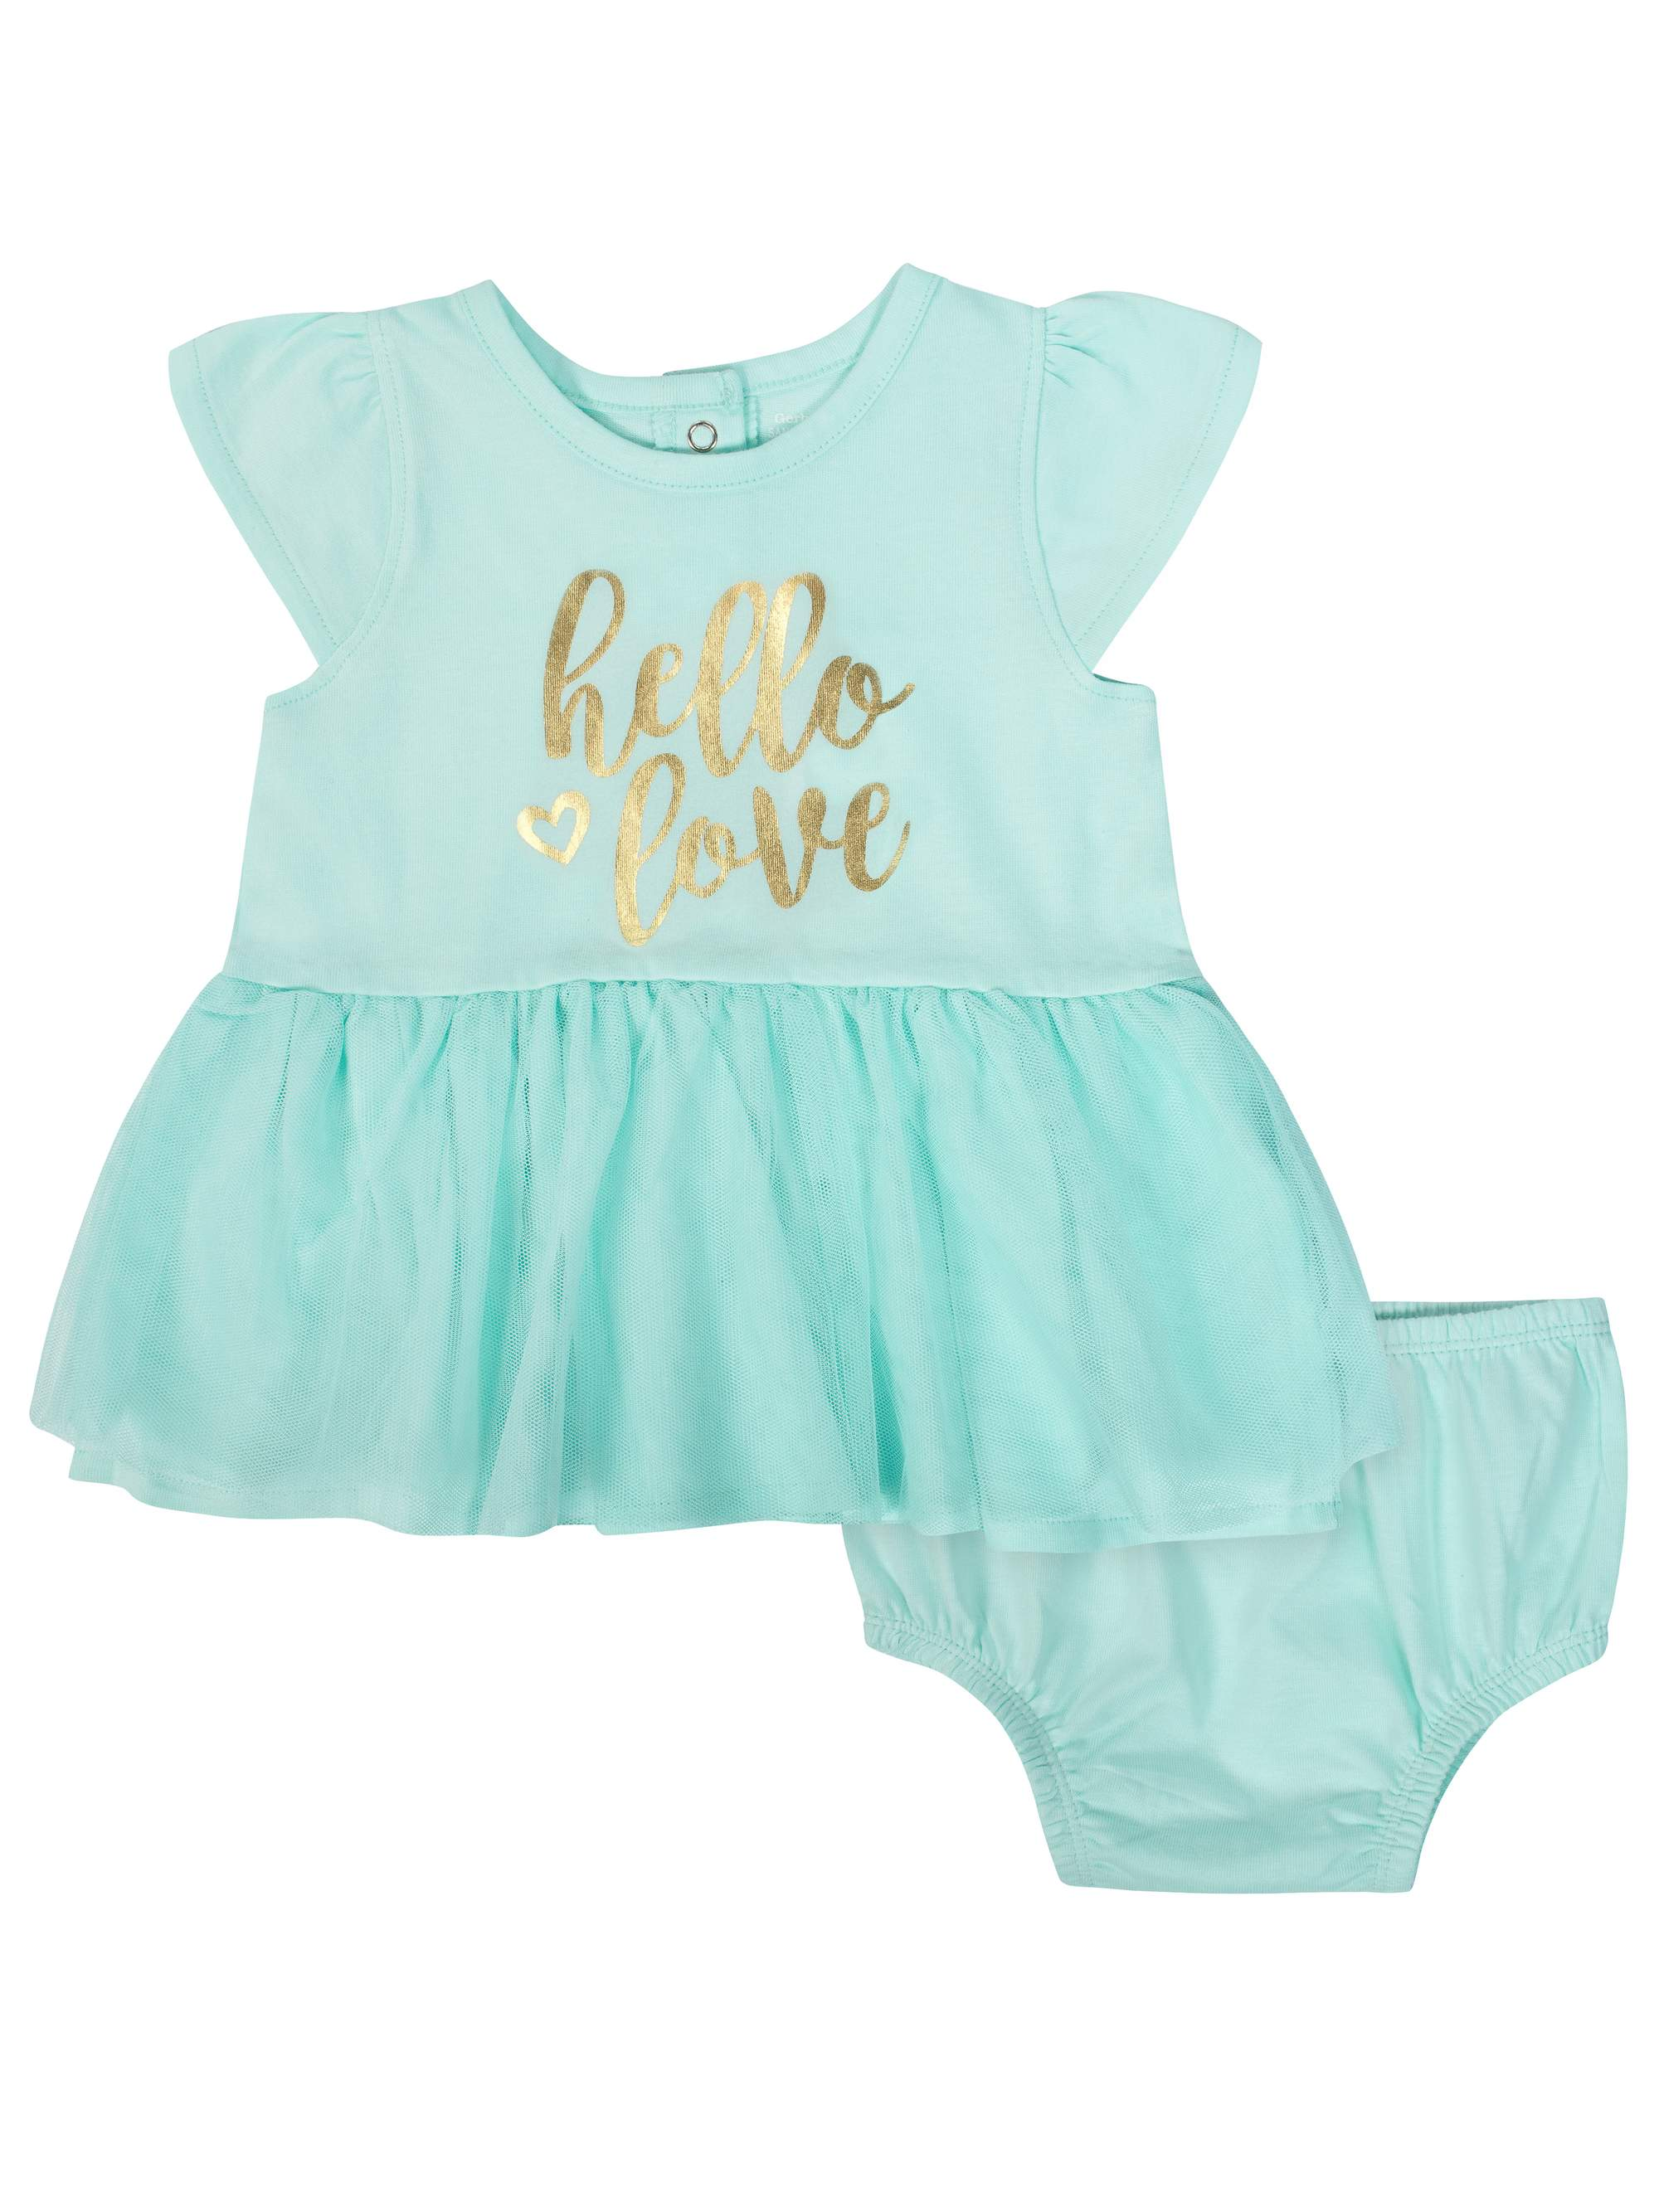 Tulle Dress and Diaper Cover Outfit Set, 2pc (Baby Girls)